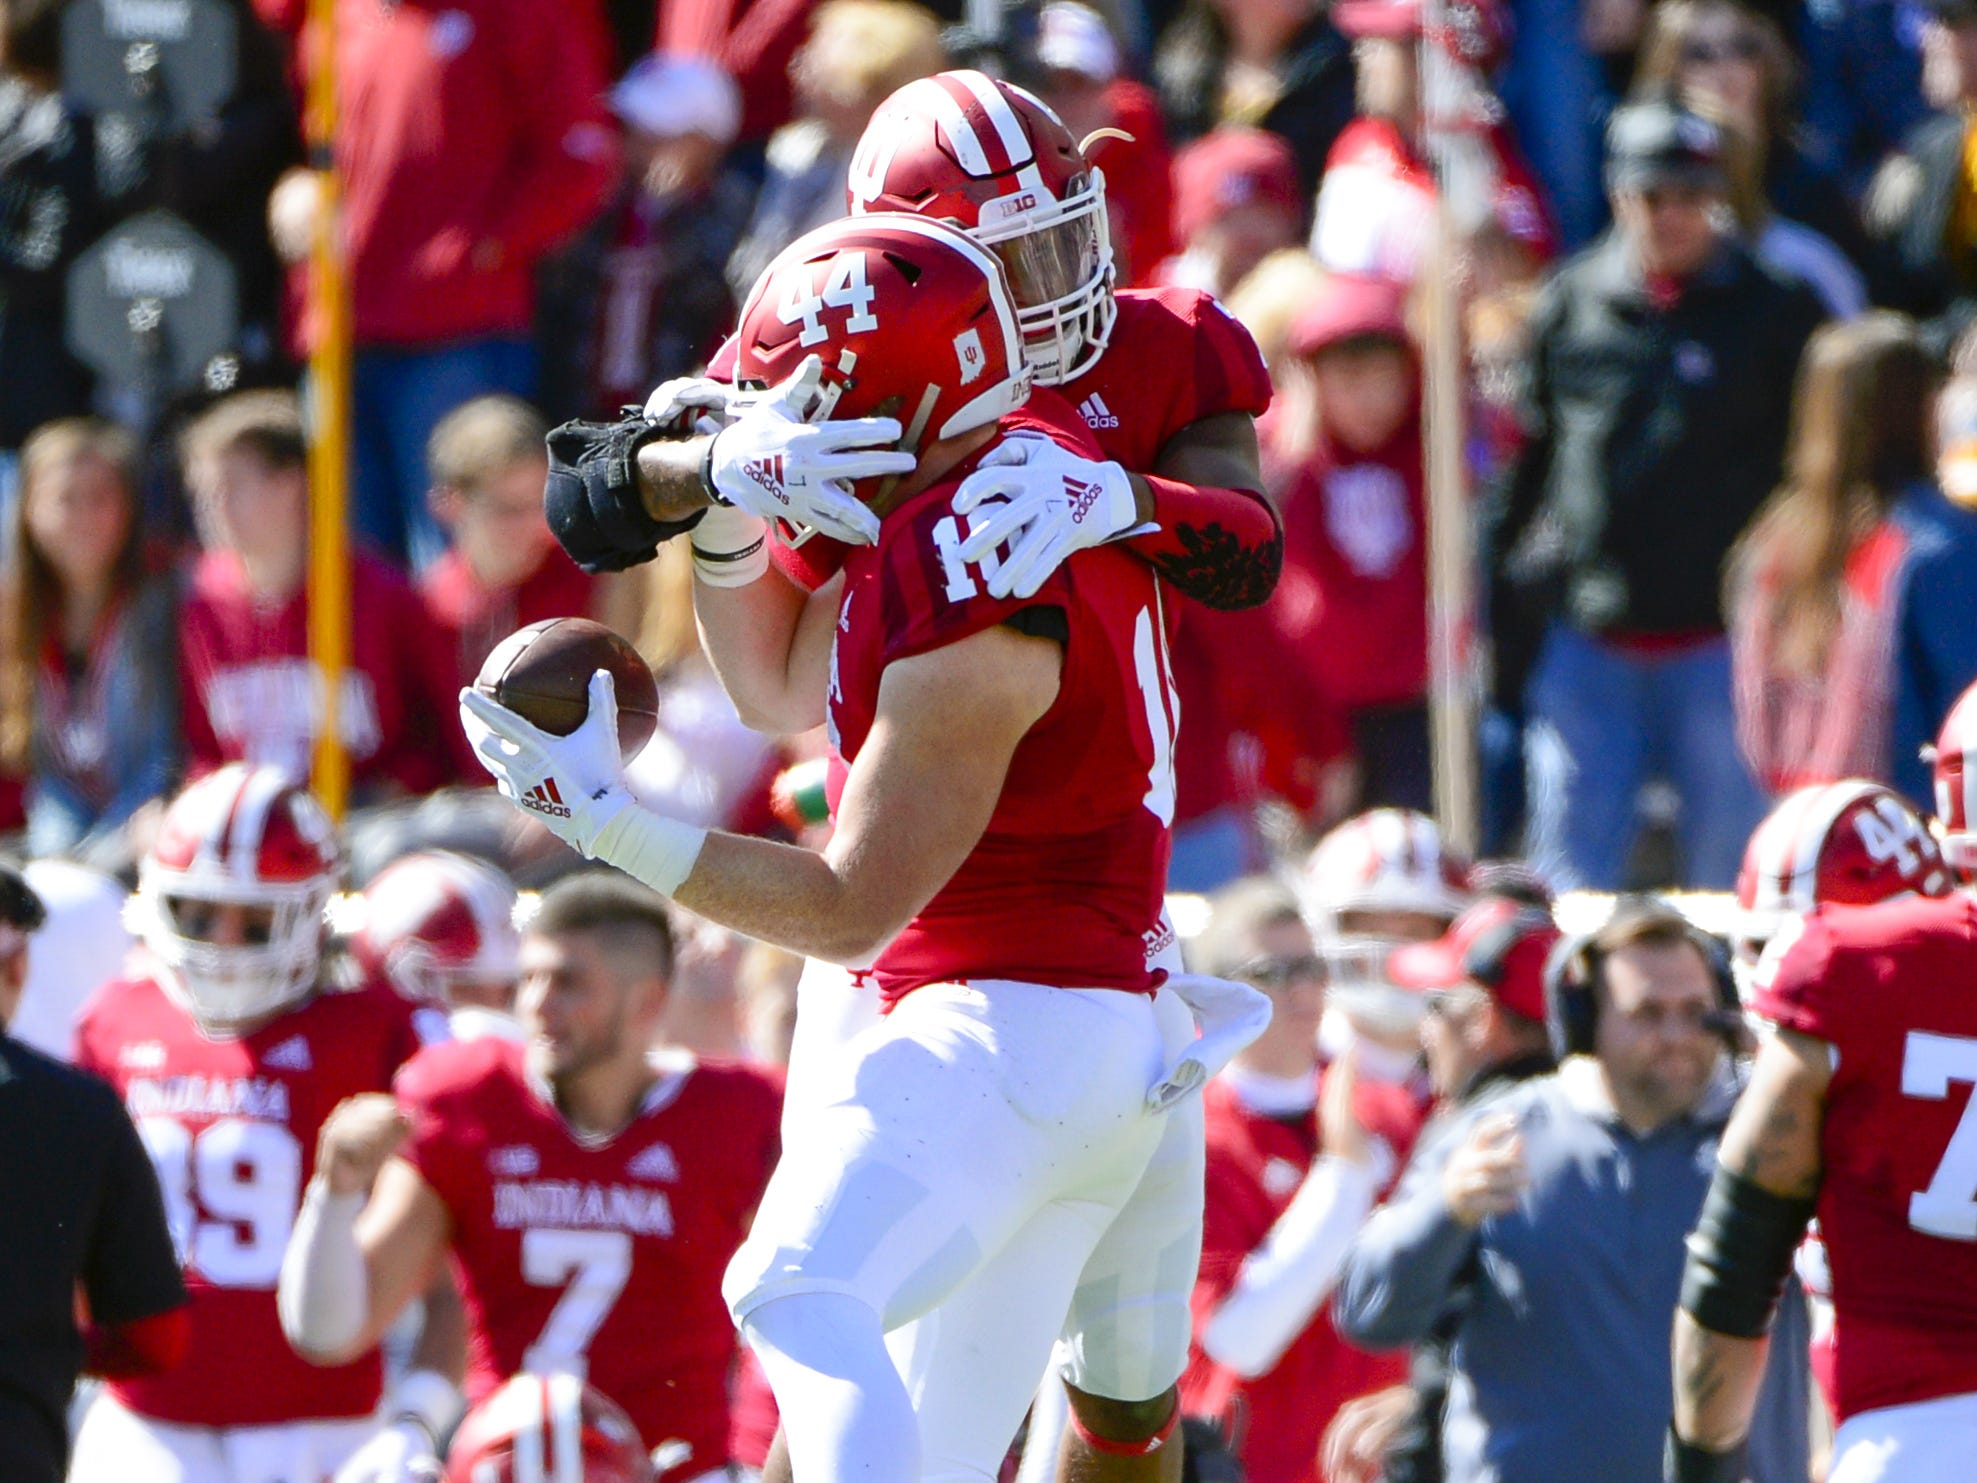 Indiana Hoosiers linebacker Thomas Allen (10) celebrates with a teammate after an interception against Iowa at Memorial Stadium in Bloomington, Ind., on Saturday, Oct. 13, 2018.